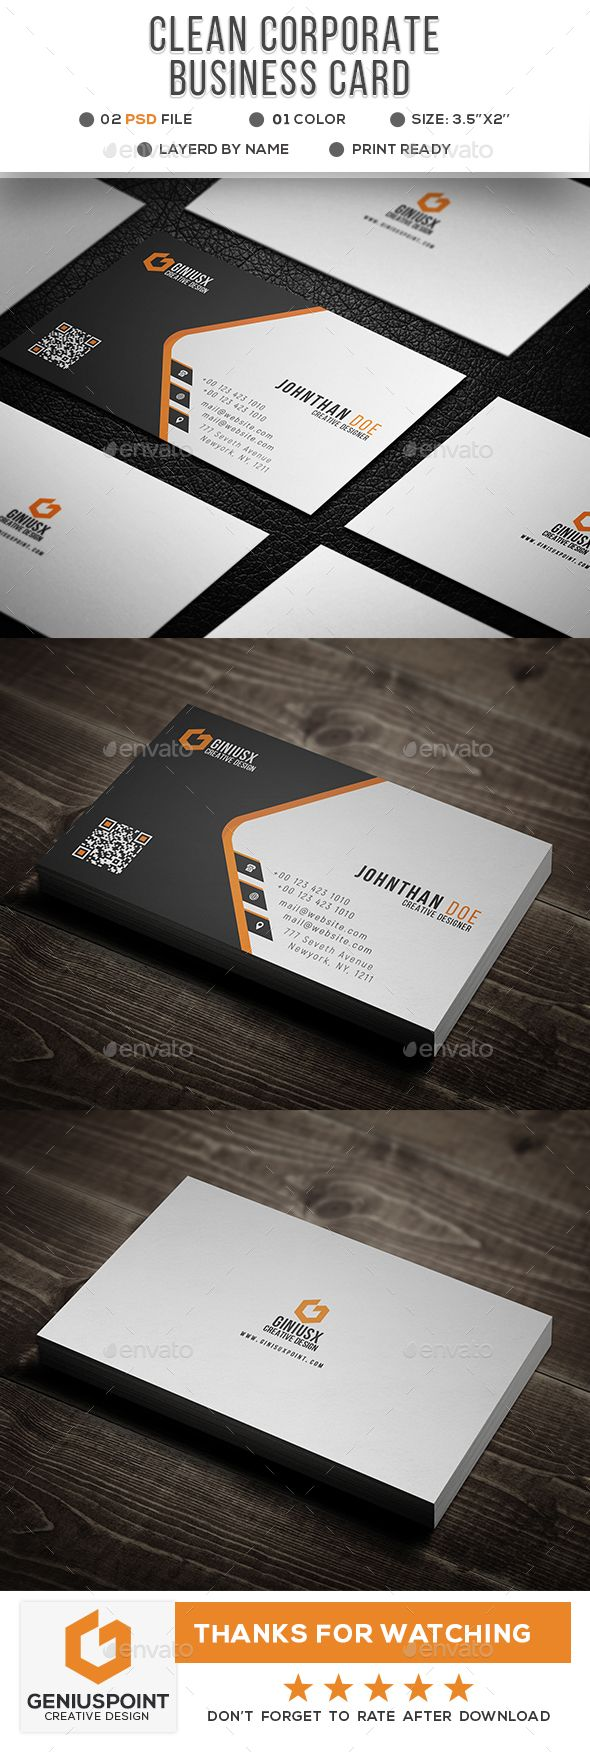 The 25 best minimal business card ideas on pinterest minimalist the 25 best minimal business card ideas on pinterest minimalist business cards simple business cards and studio cards magicingreecefo Images